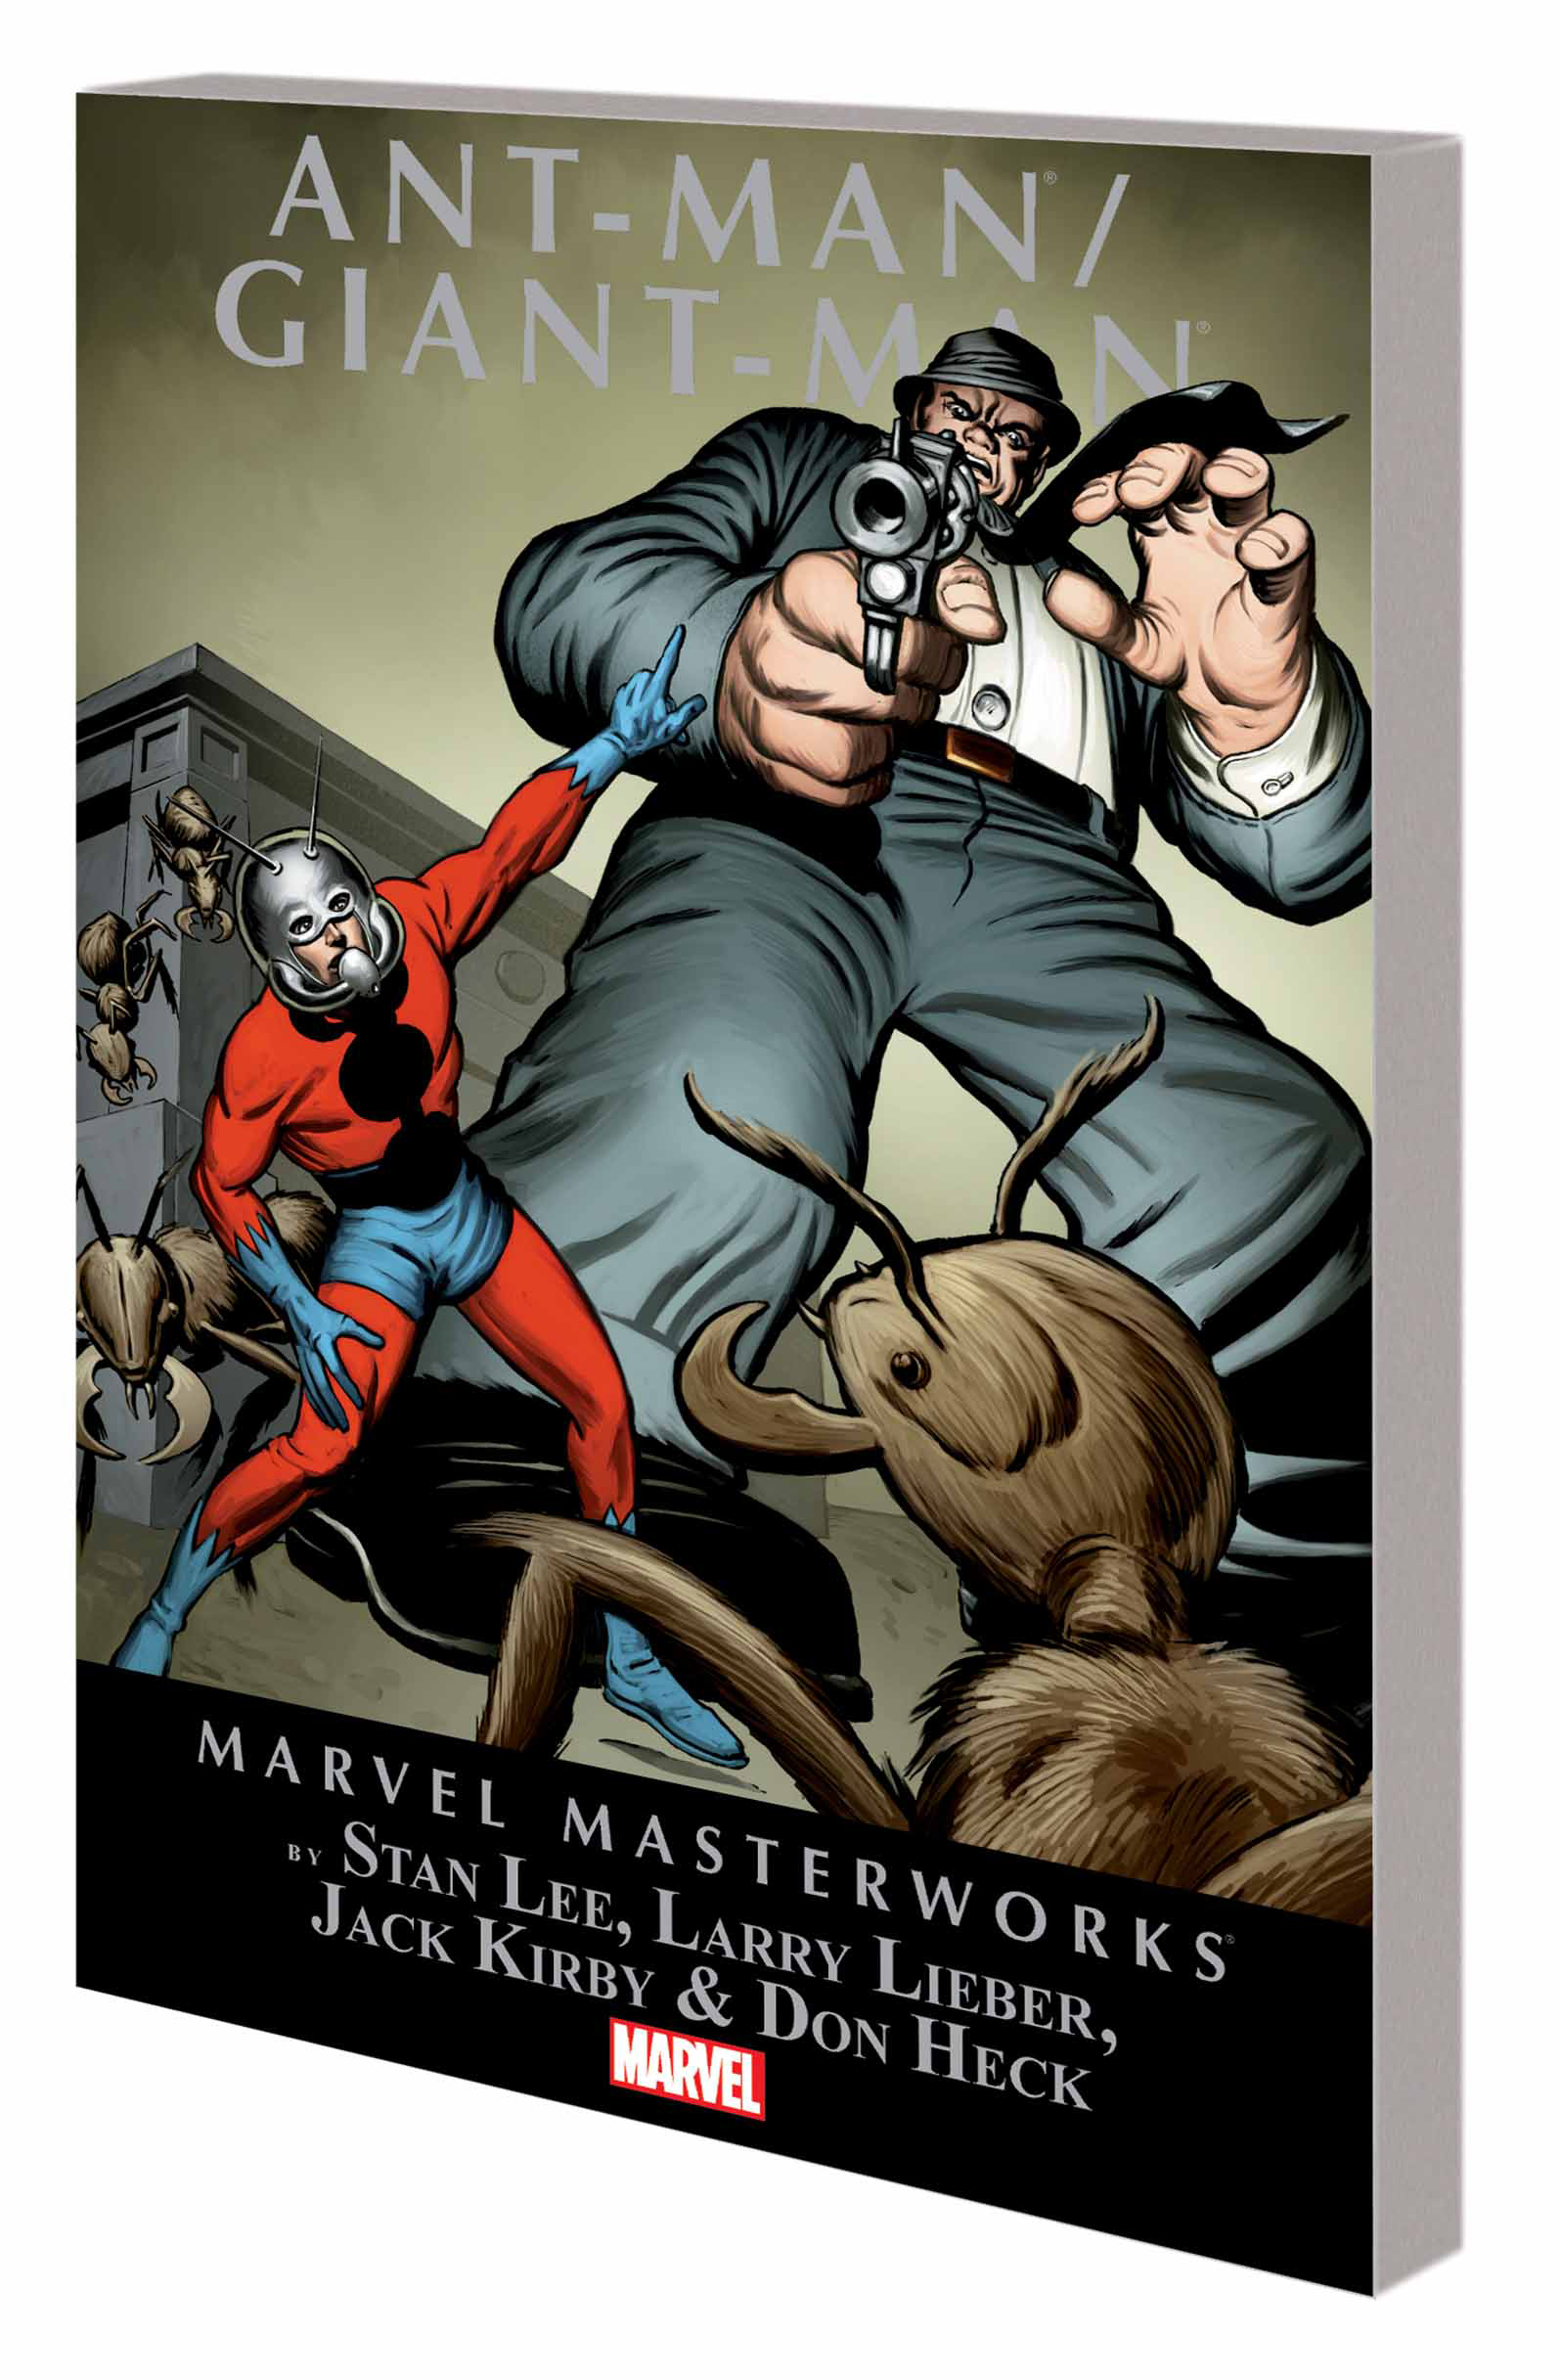 MMW ANT-MAN GIANT-MAN TP VOL 01